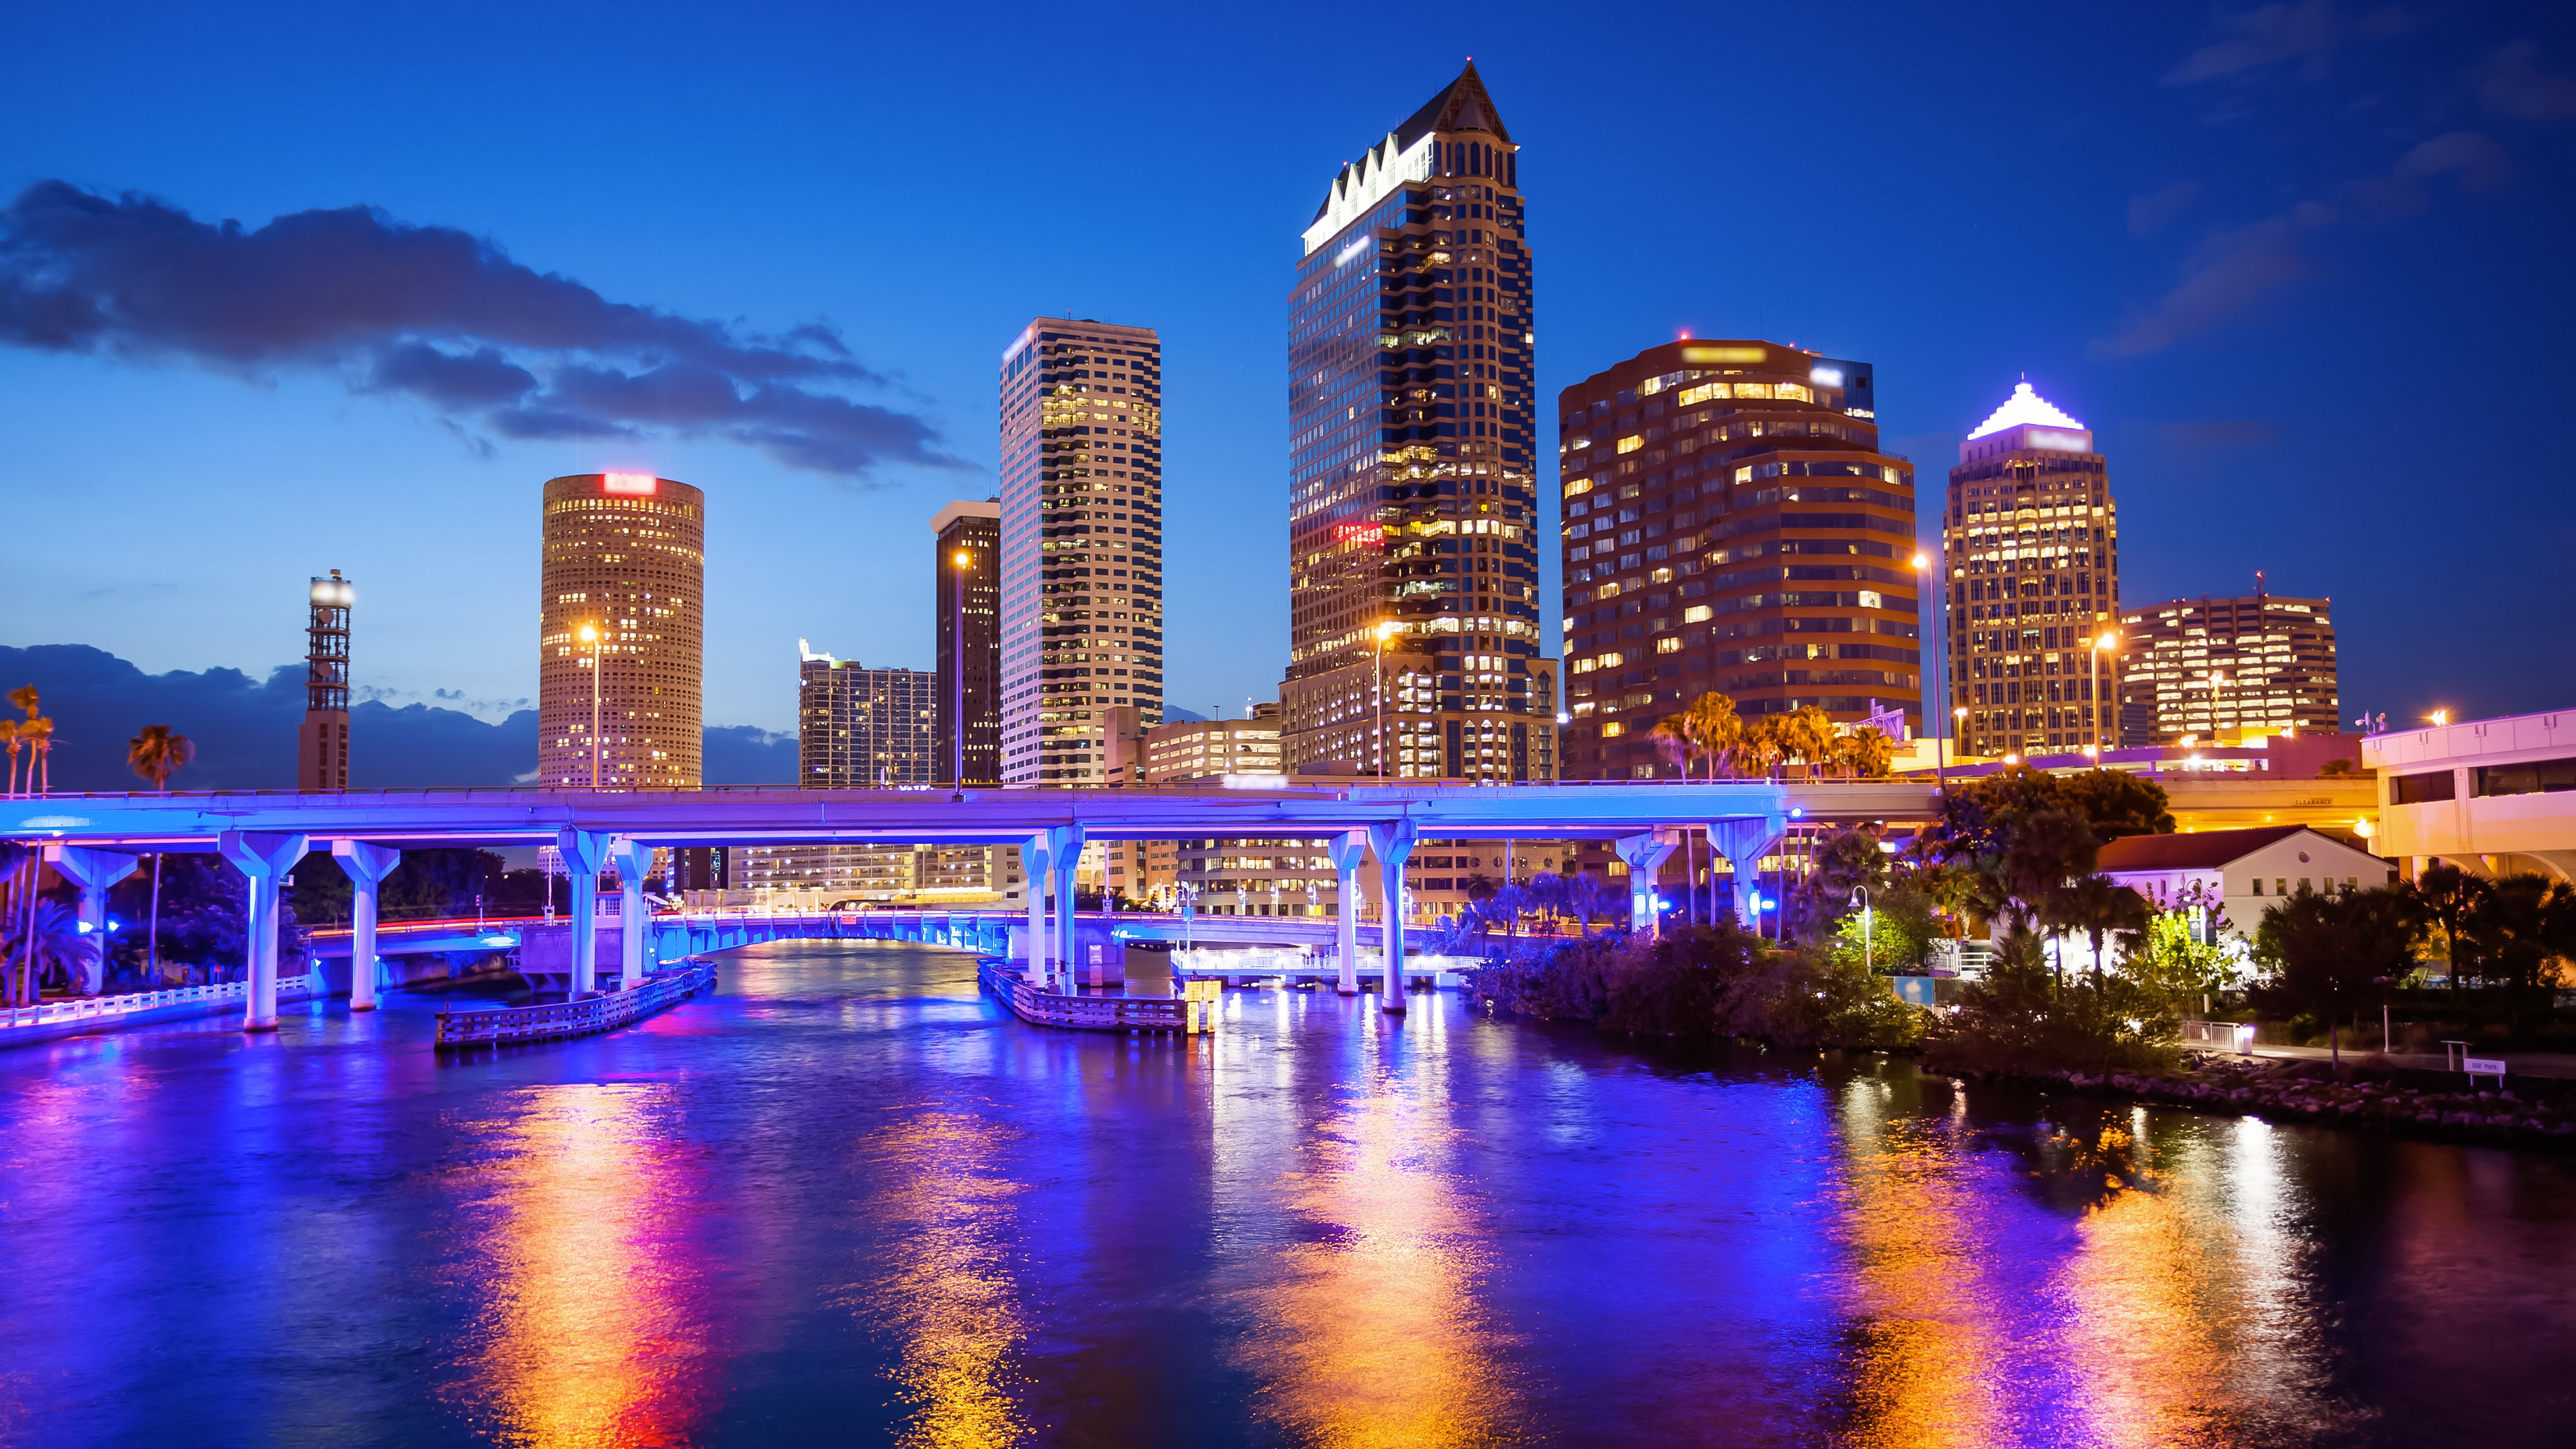 Downtown Tampa, Florida City Skyline at Night - Cityscape (logos blurred)